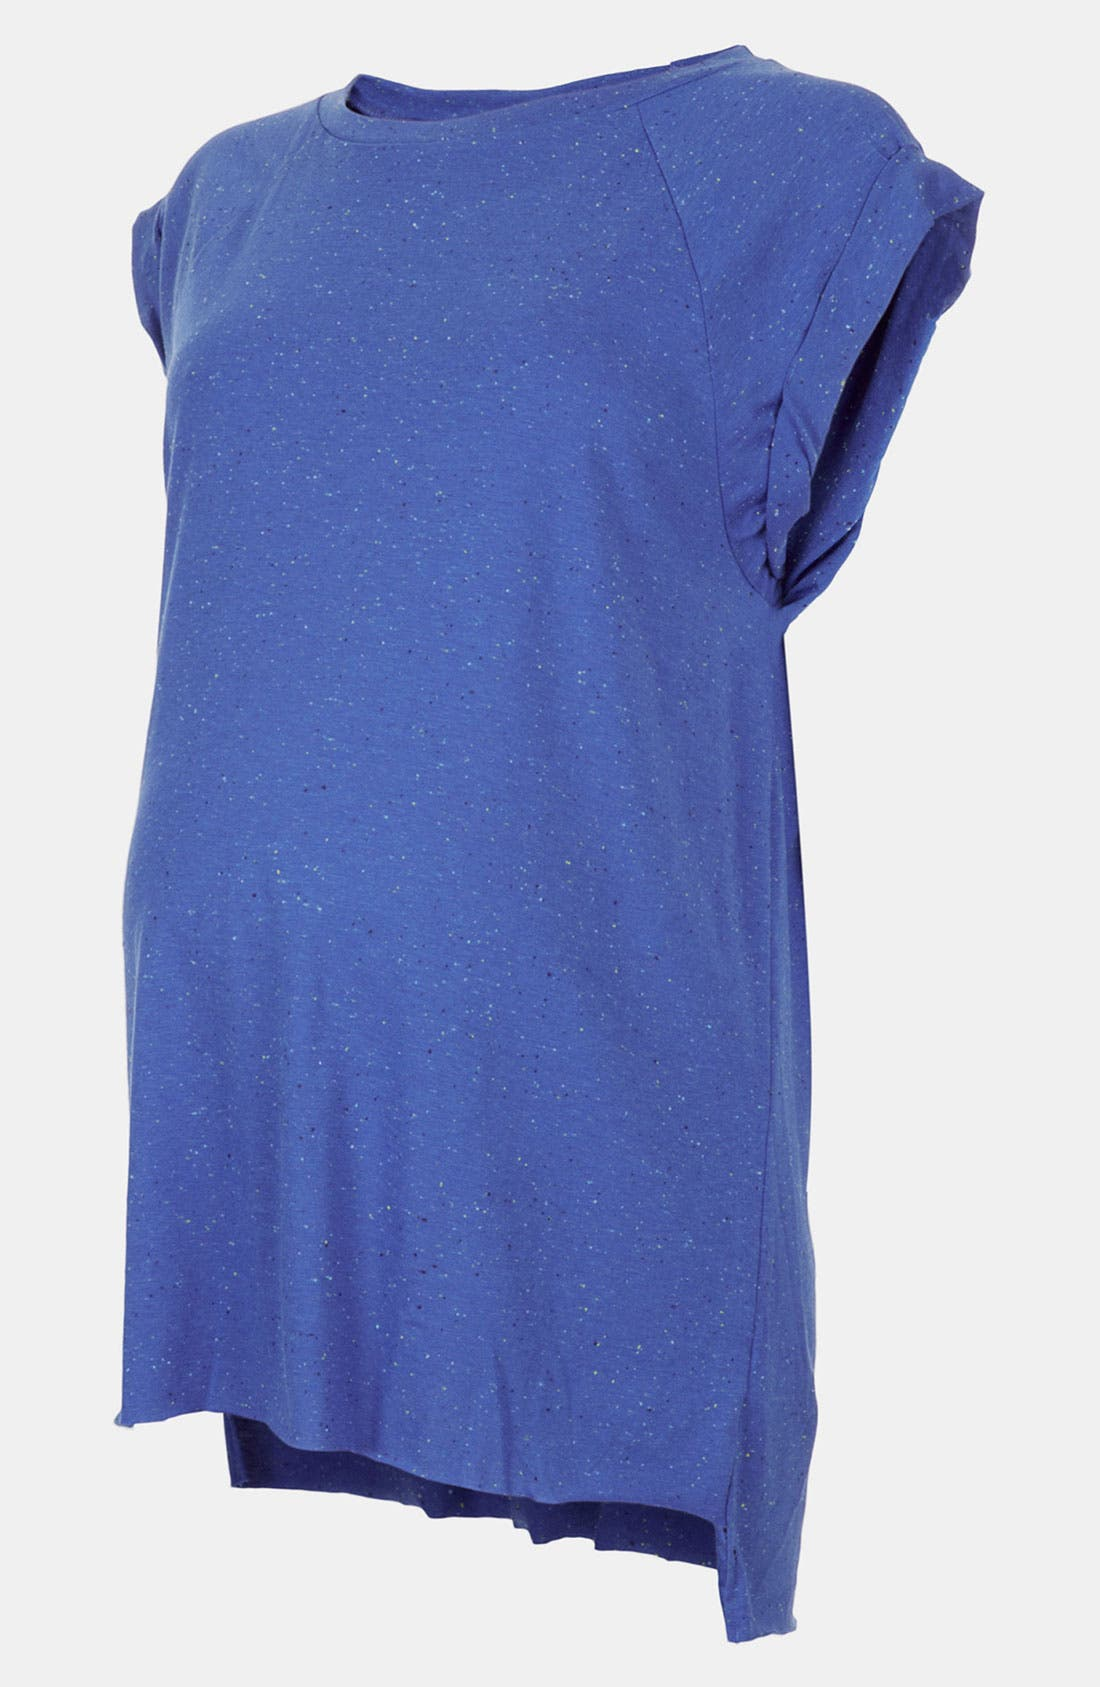 Alternate Image 1 Selected - Topshop 'High Roller' Maternity Tee